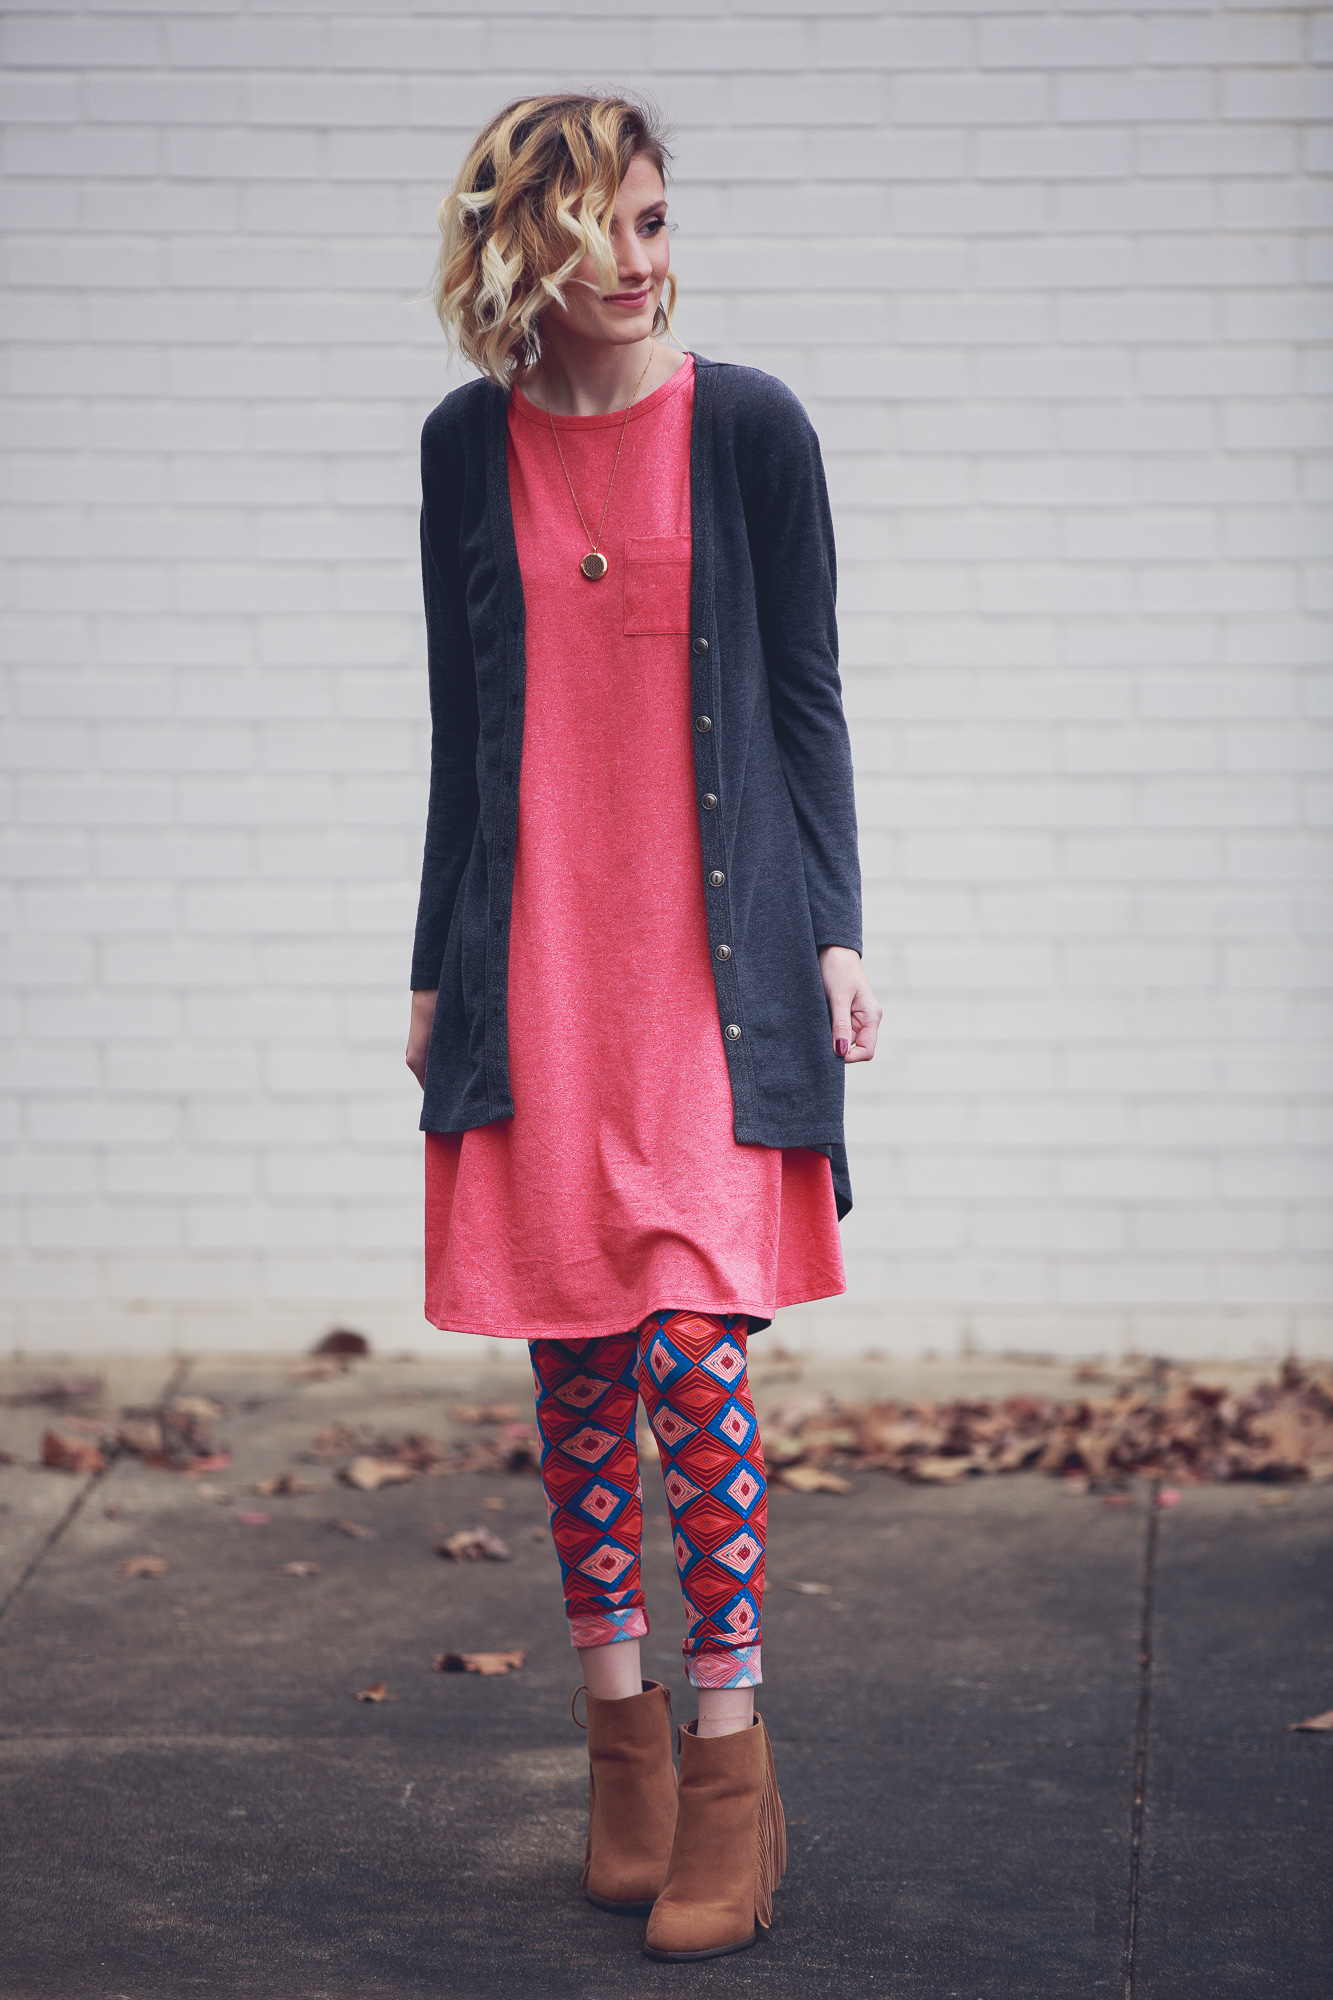 Fashion photo of the Carly Dress from LulaRoe Life by Angela Lange